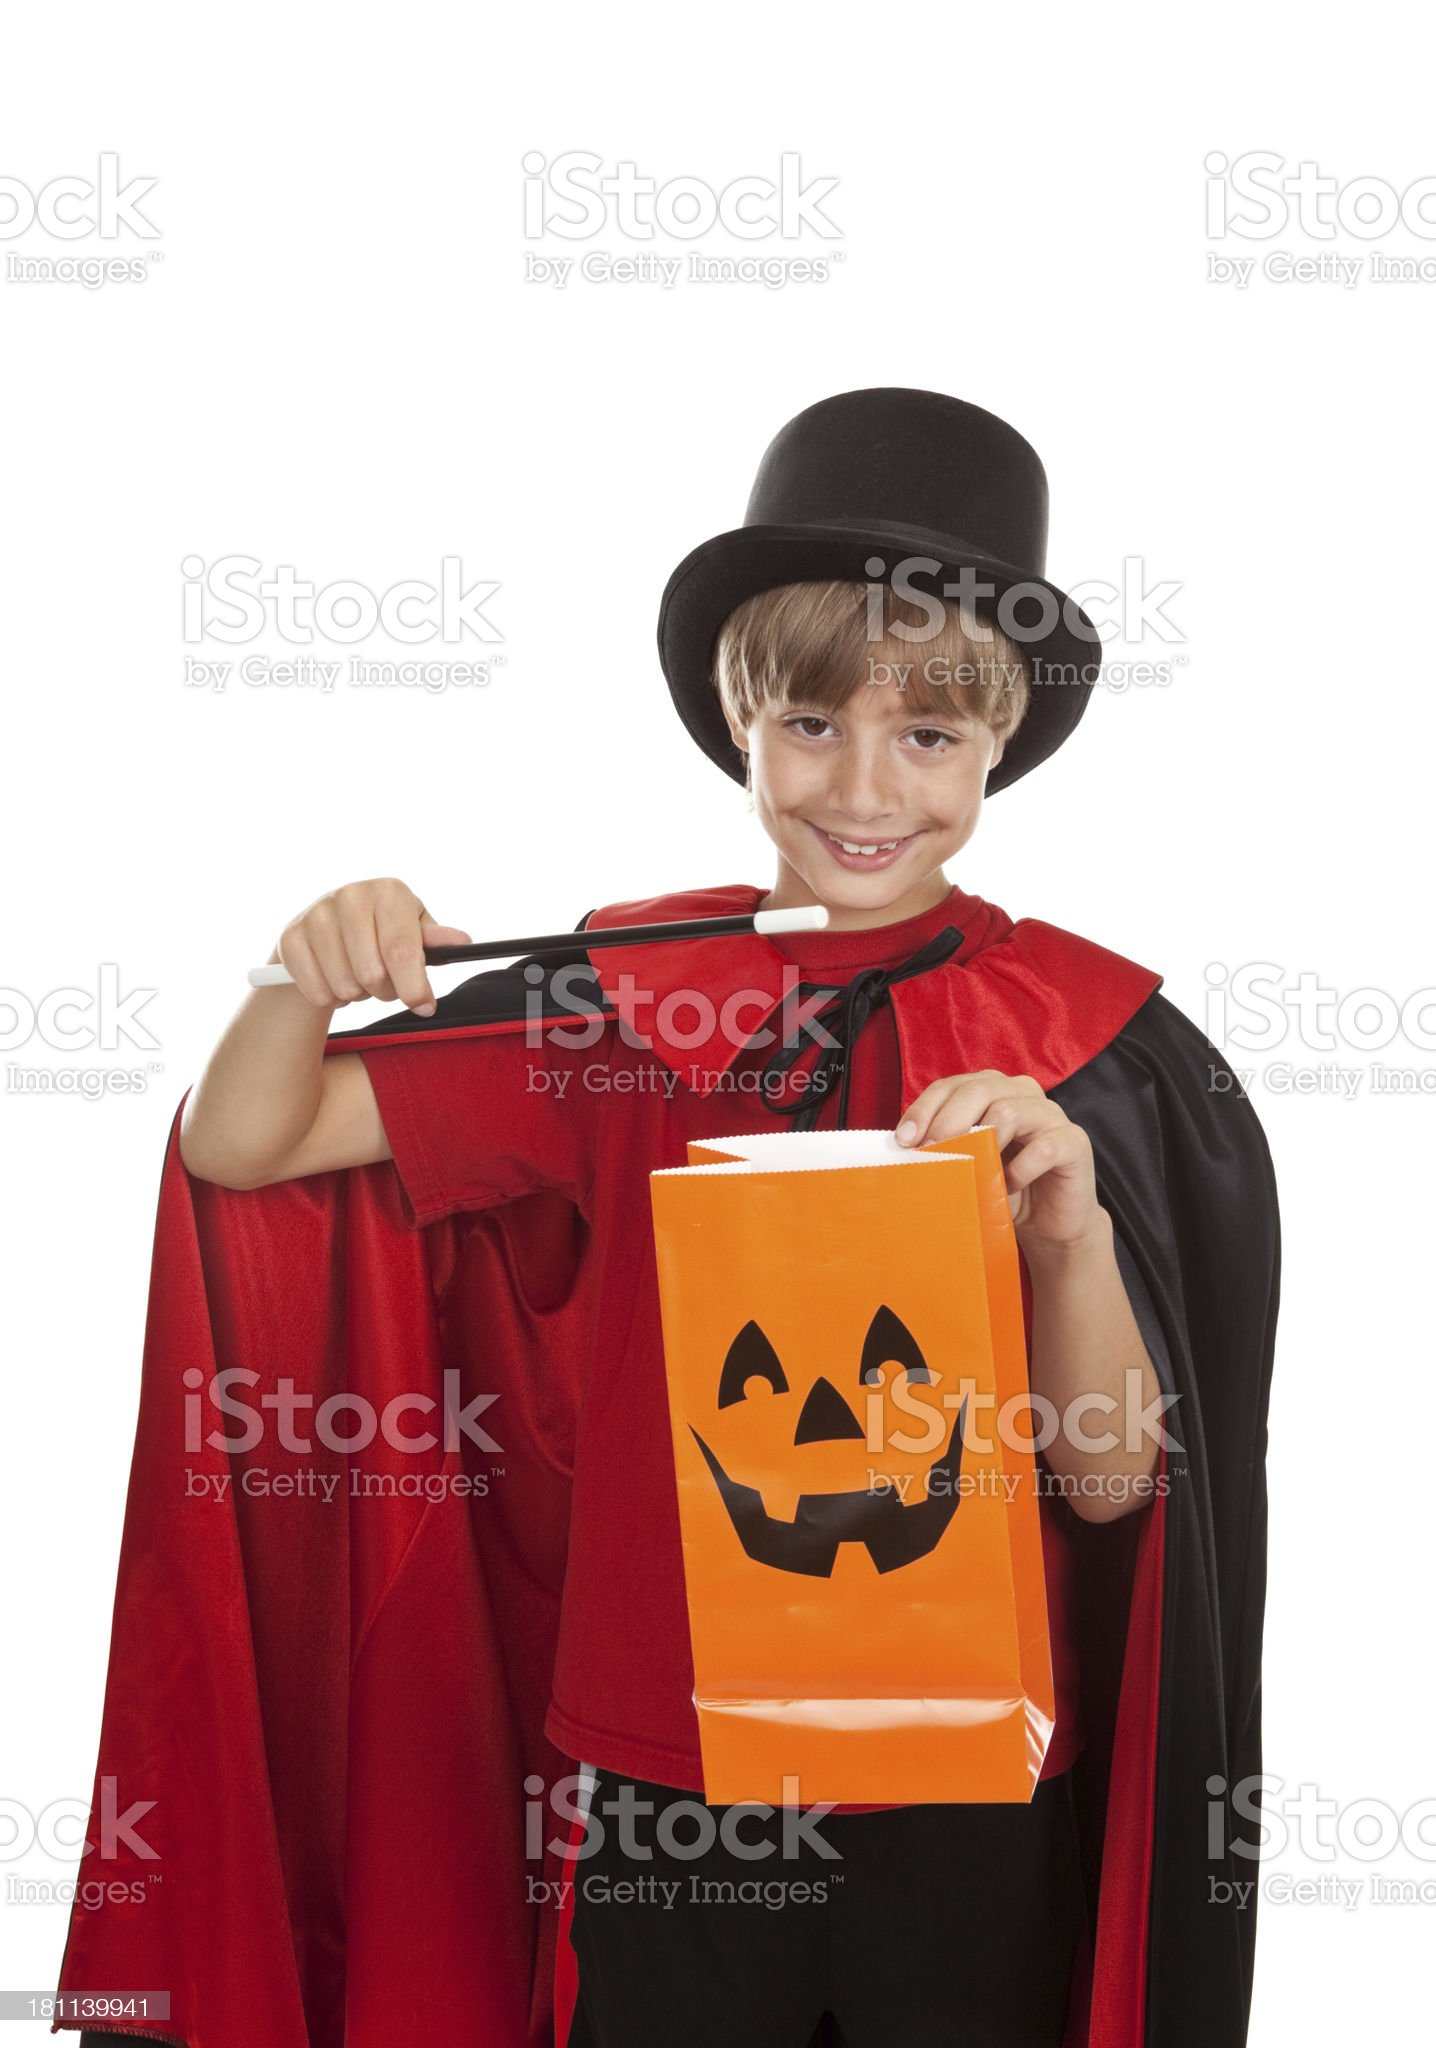 Young Boy Dressed As Magician With Trick-or-Treat Bag royalty-free stock photo